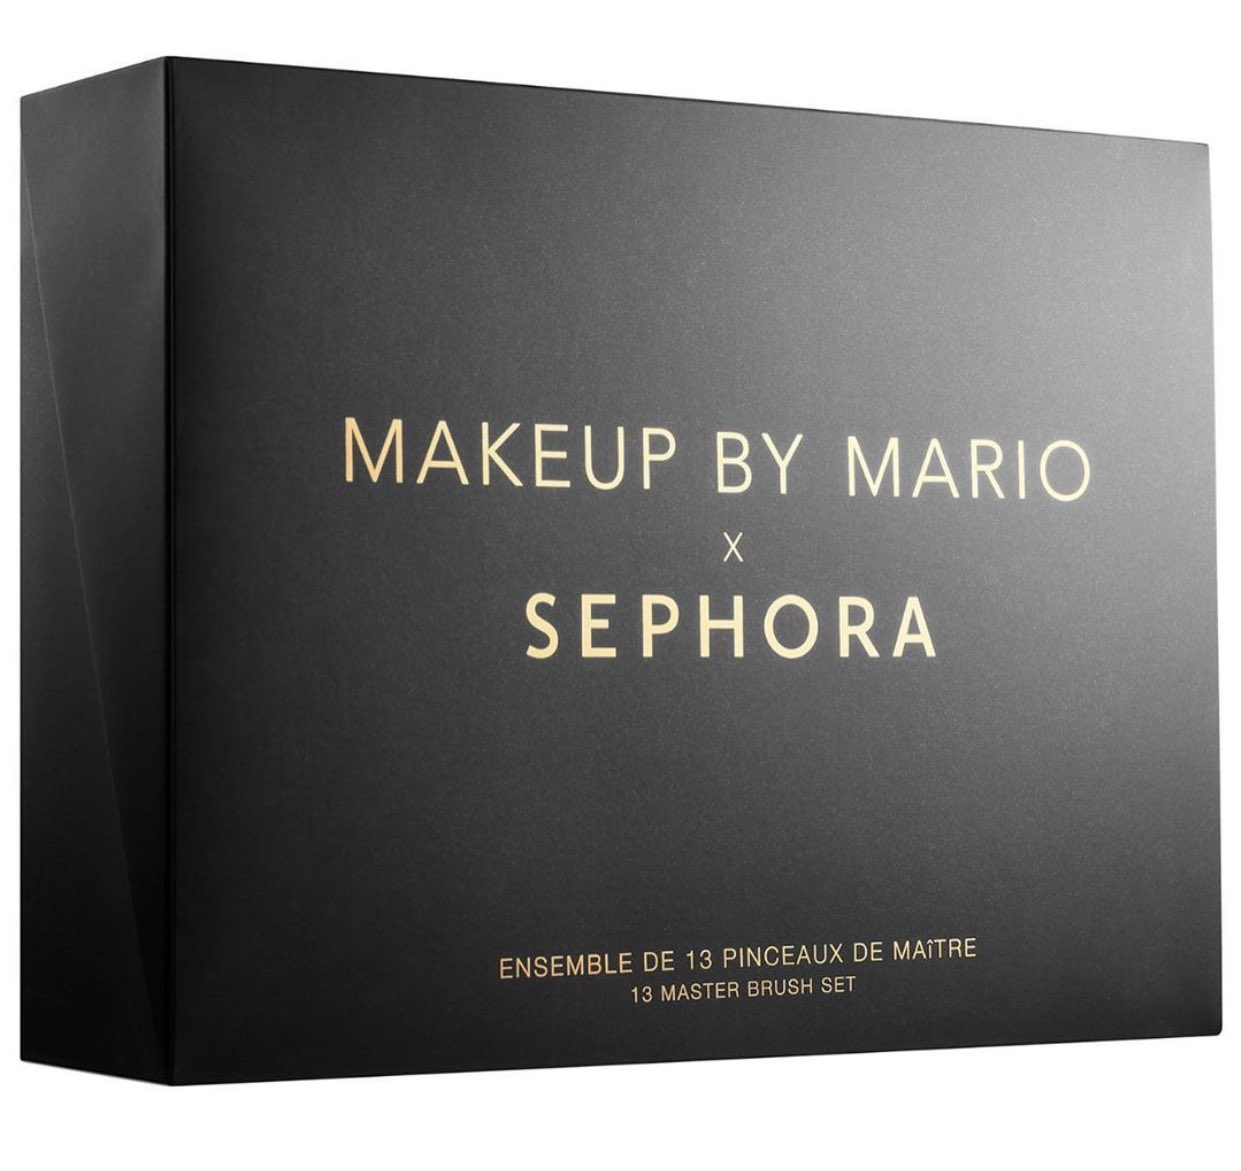 MAKEUP BY MARIO x SEPHORA - Master Brush Set by Sephora Collection #11